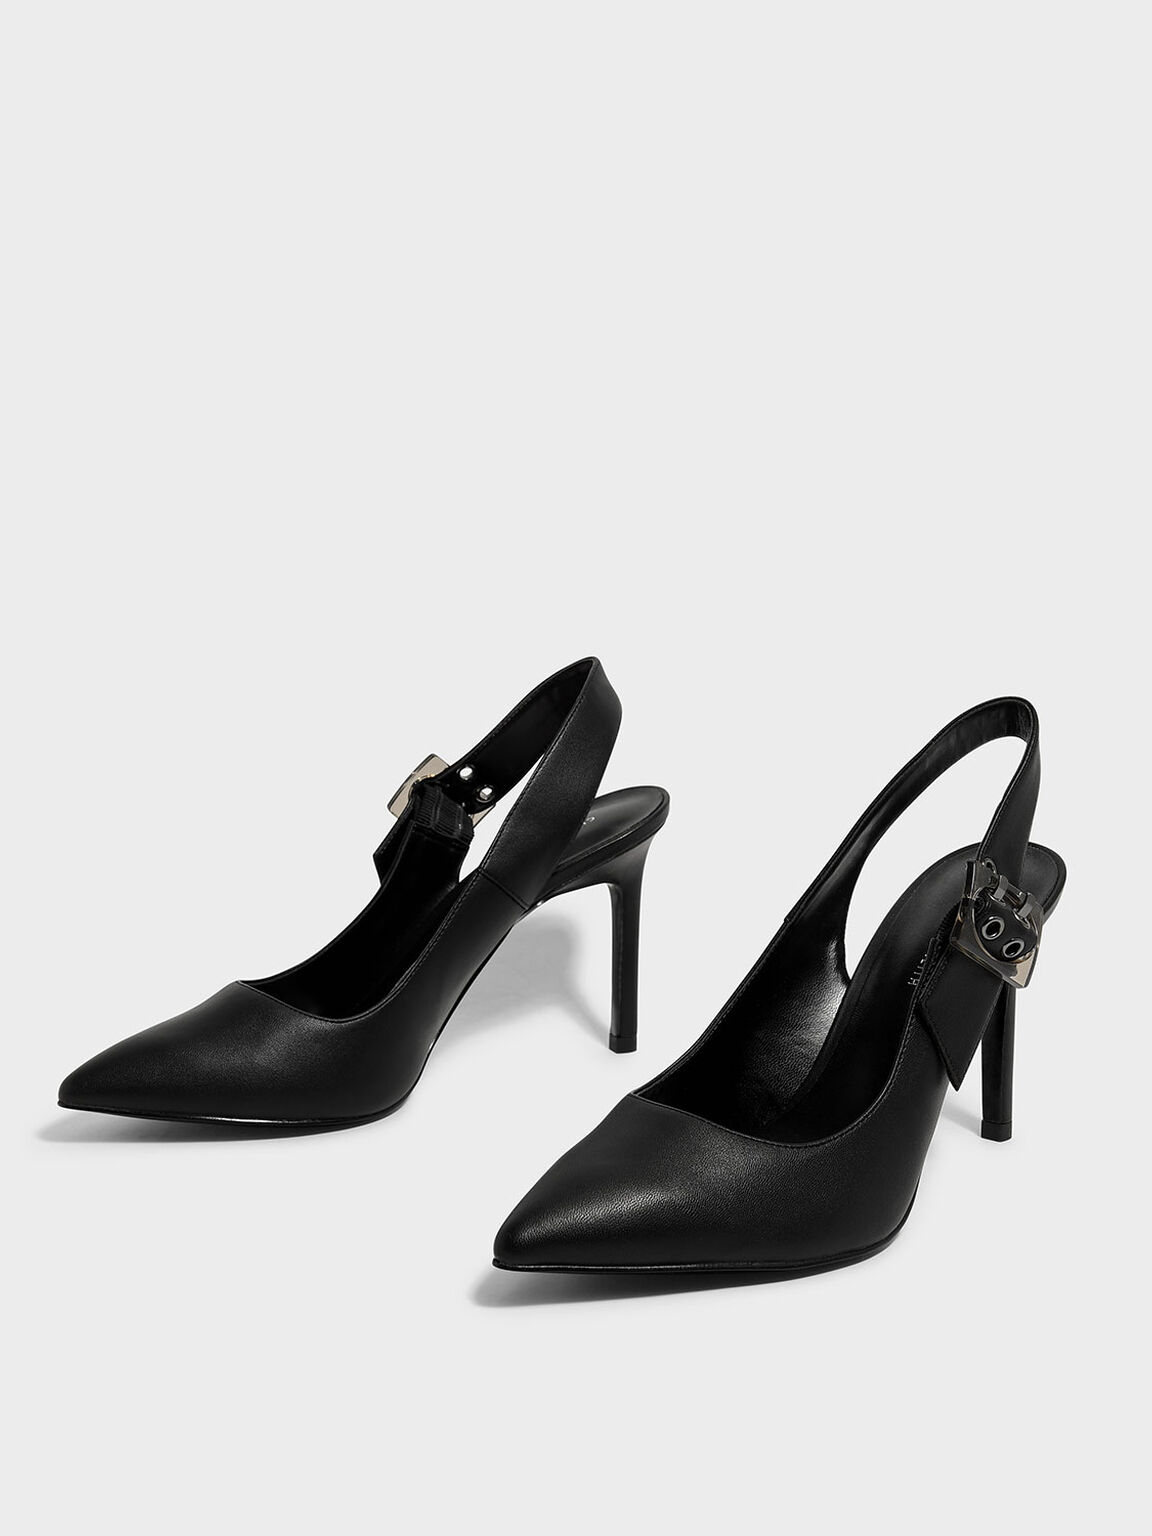 Oversized Buckle Slingbacks, Black, hi-res